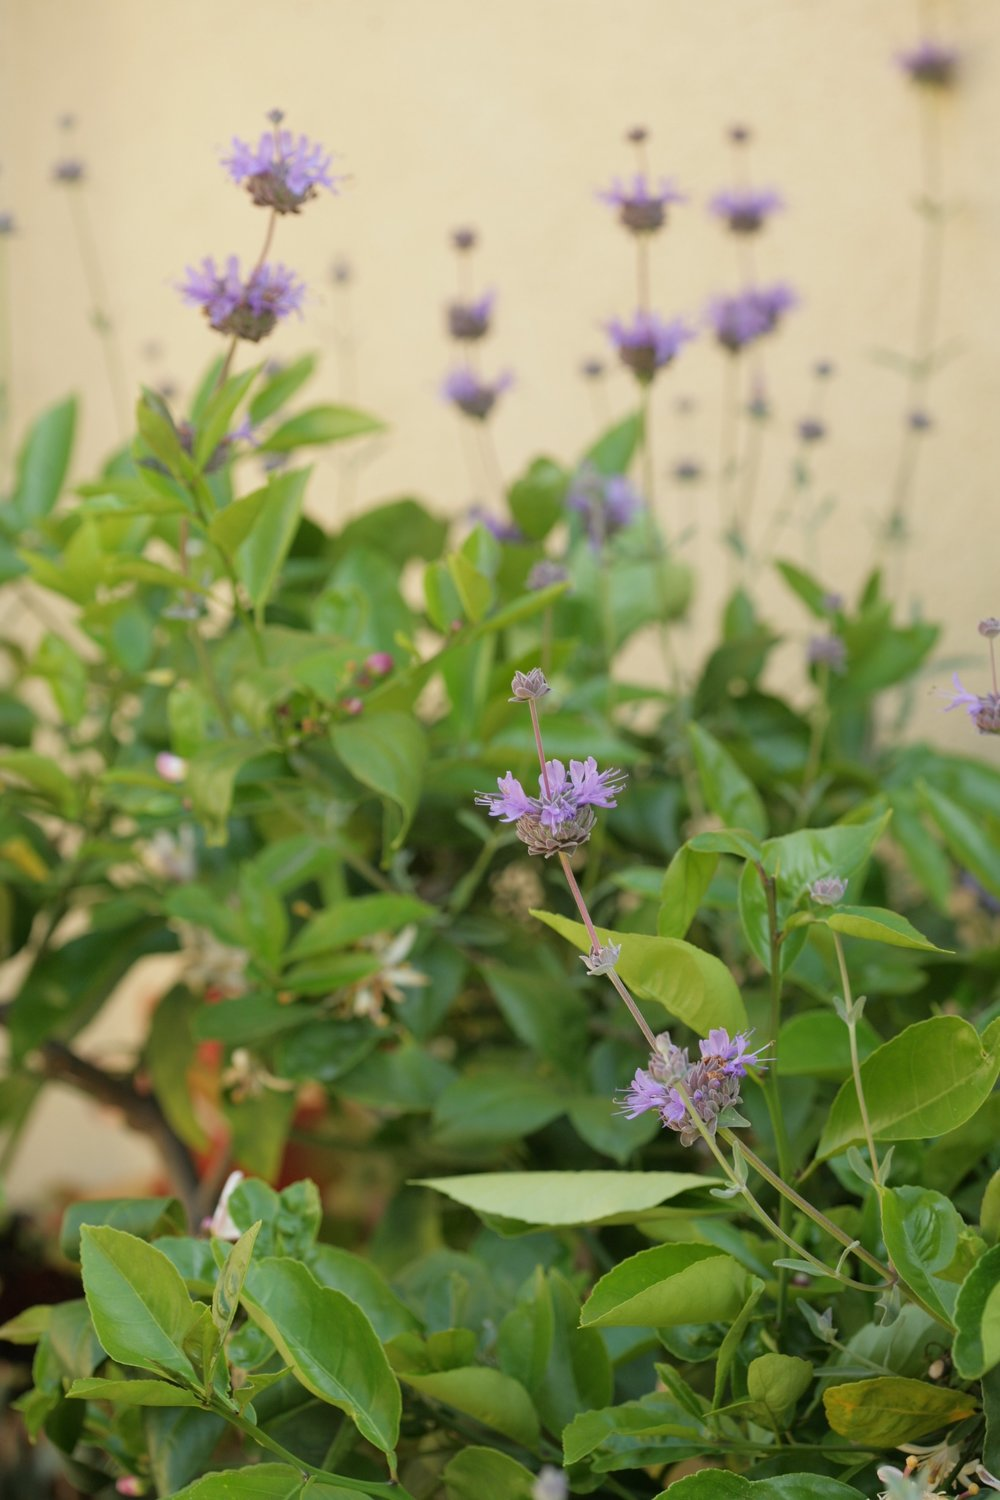 Native Salvia grows in garden beds amongst potted Citrus.